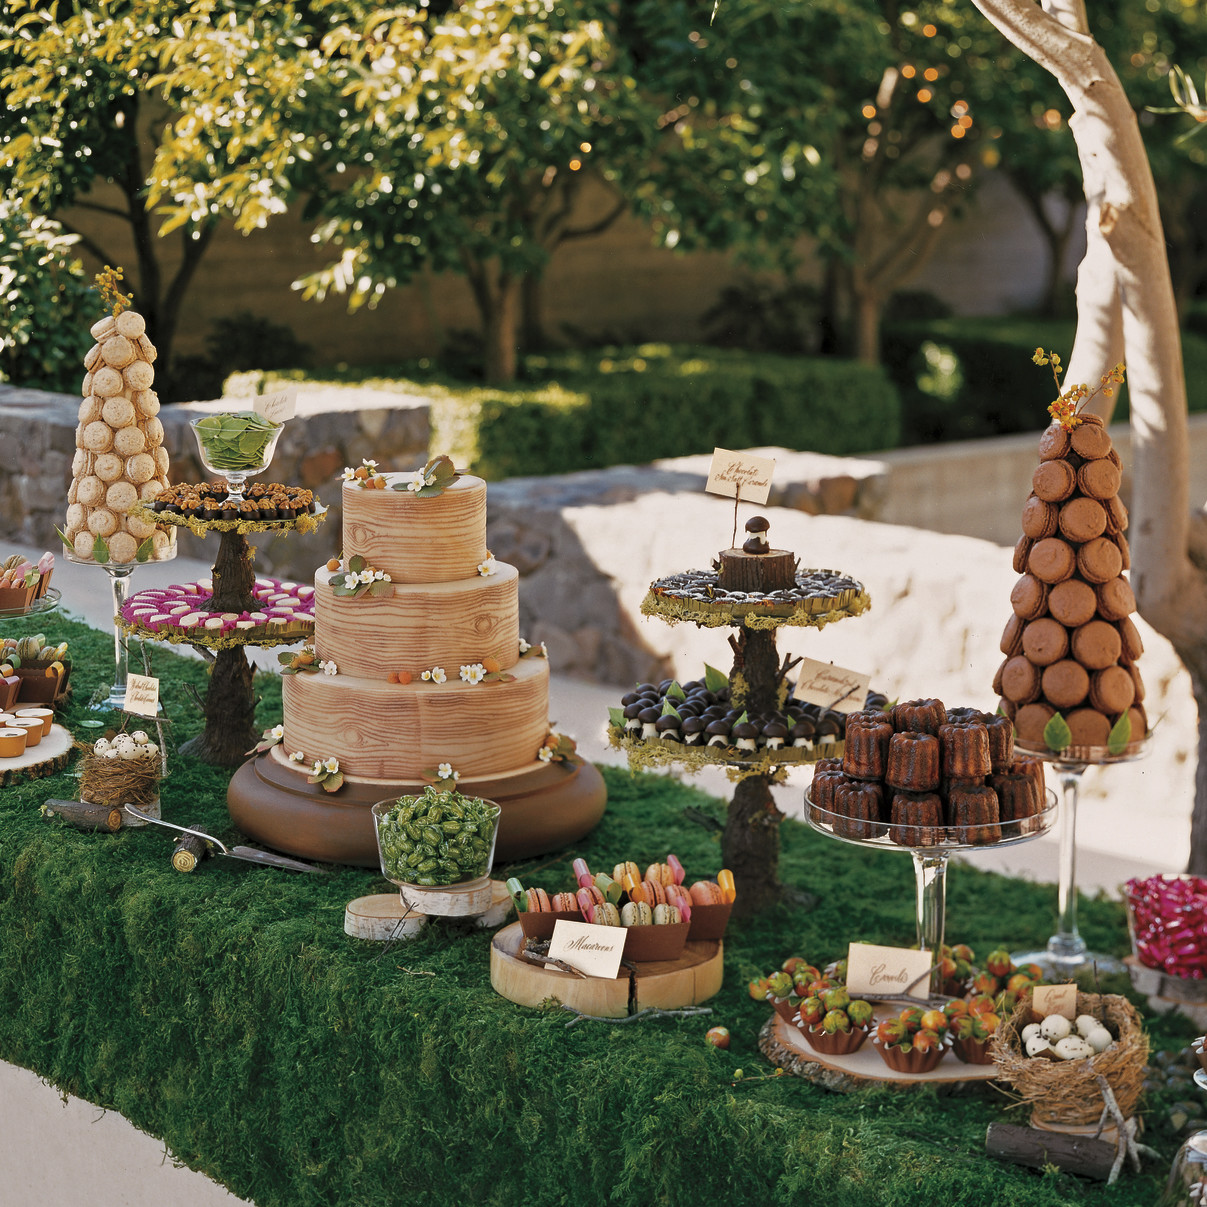 Wedding dessert table images for Where to take wedding photos